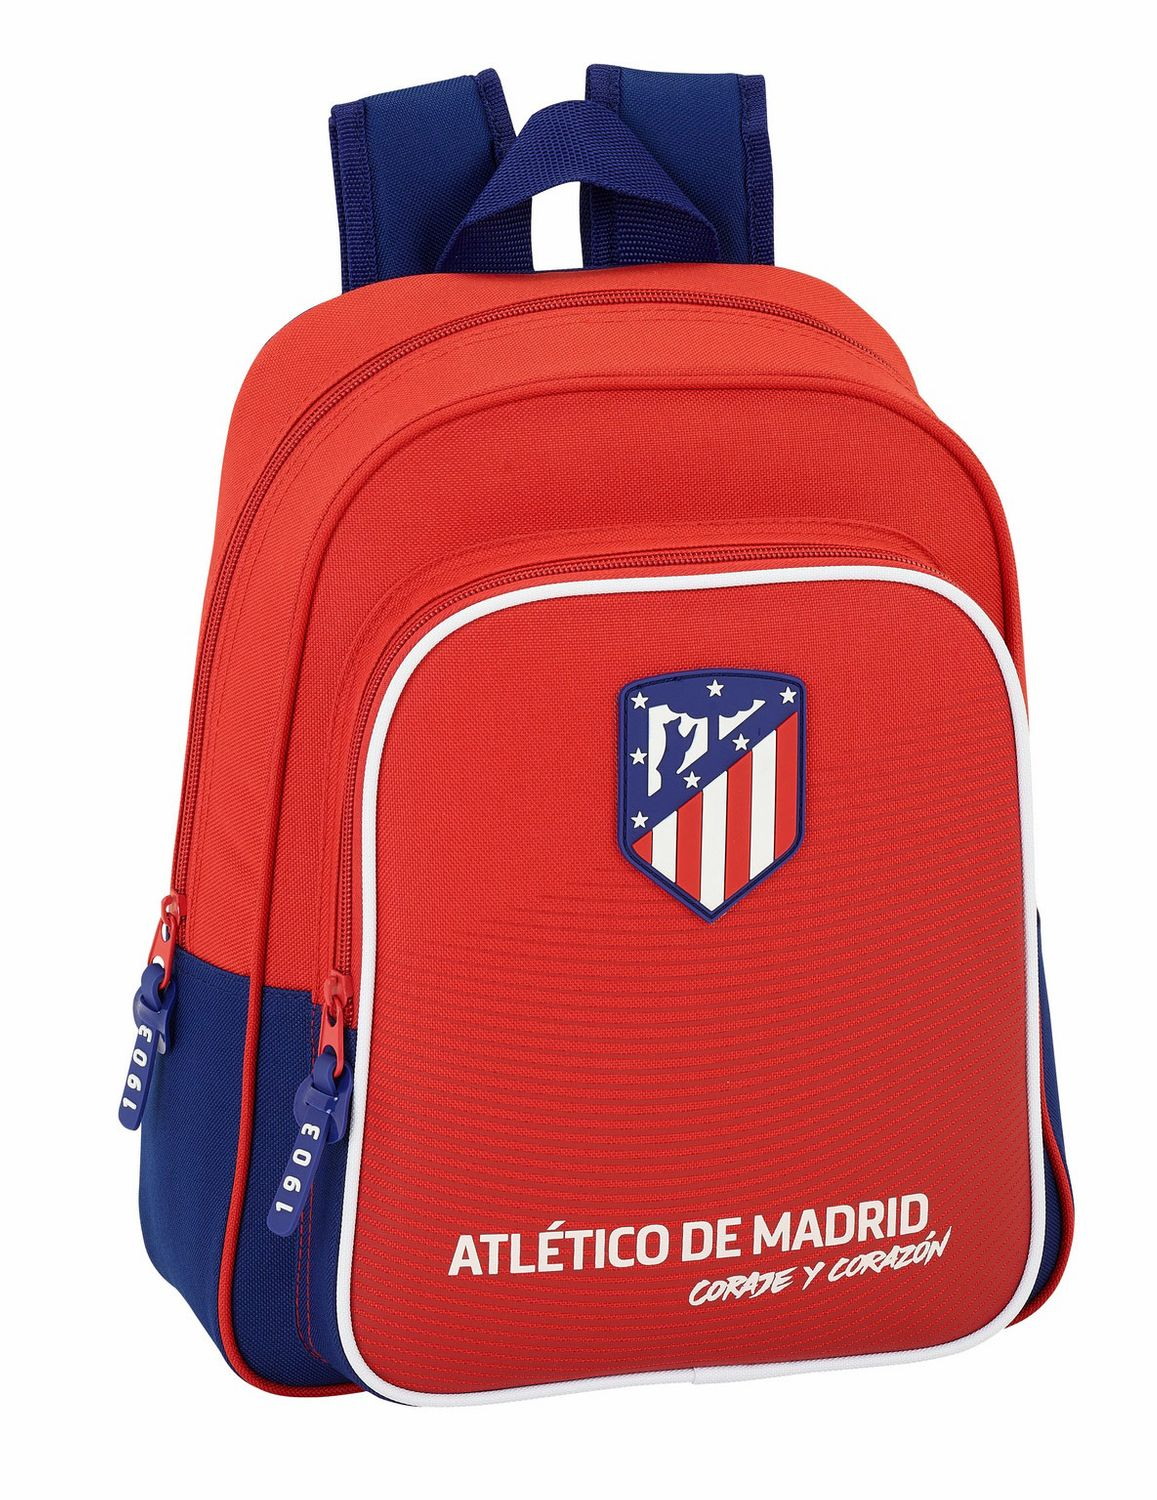 "OFFICIAL Atletico de Madrid ""Coraje"" Backpack 34 cm  – image 1"